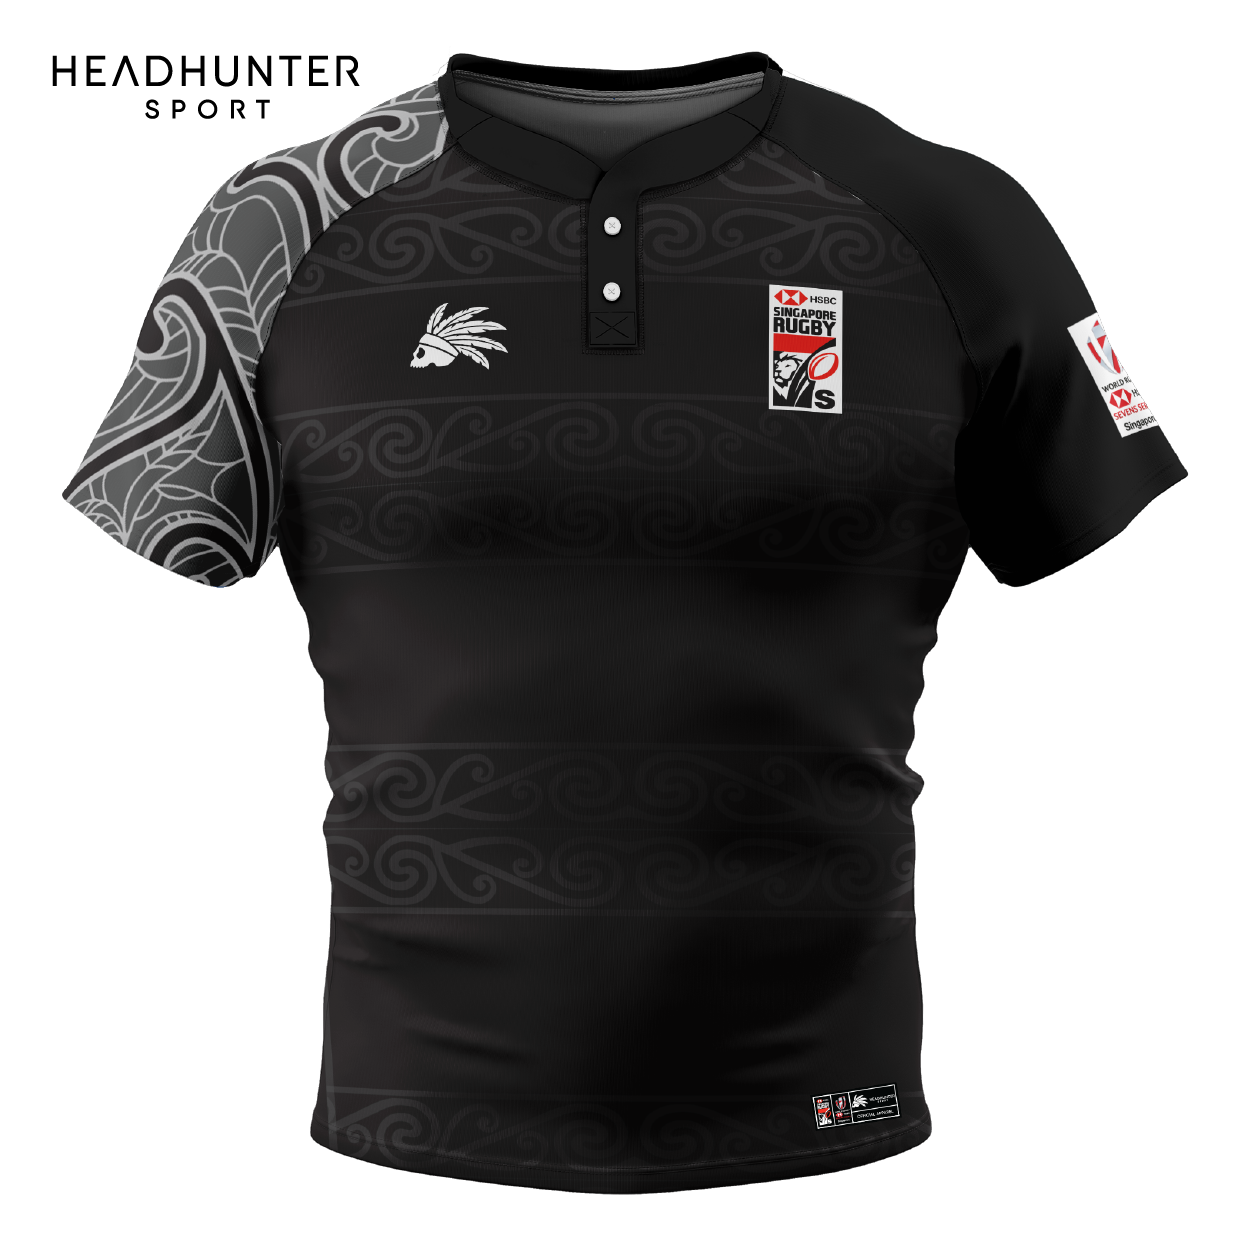 HSBC RUGBY 7S SERIES SINGAPORE 2019 MERCHANDISE NEW ZEALAND JERSEY